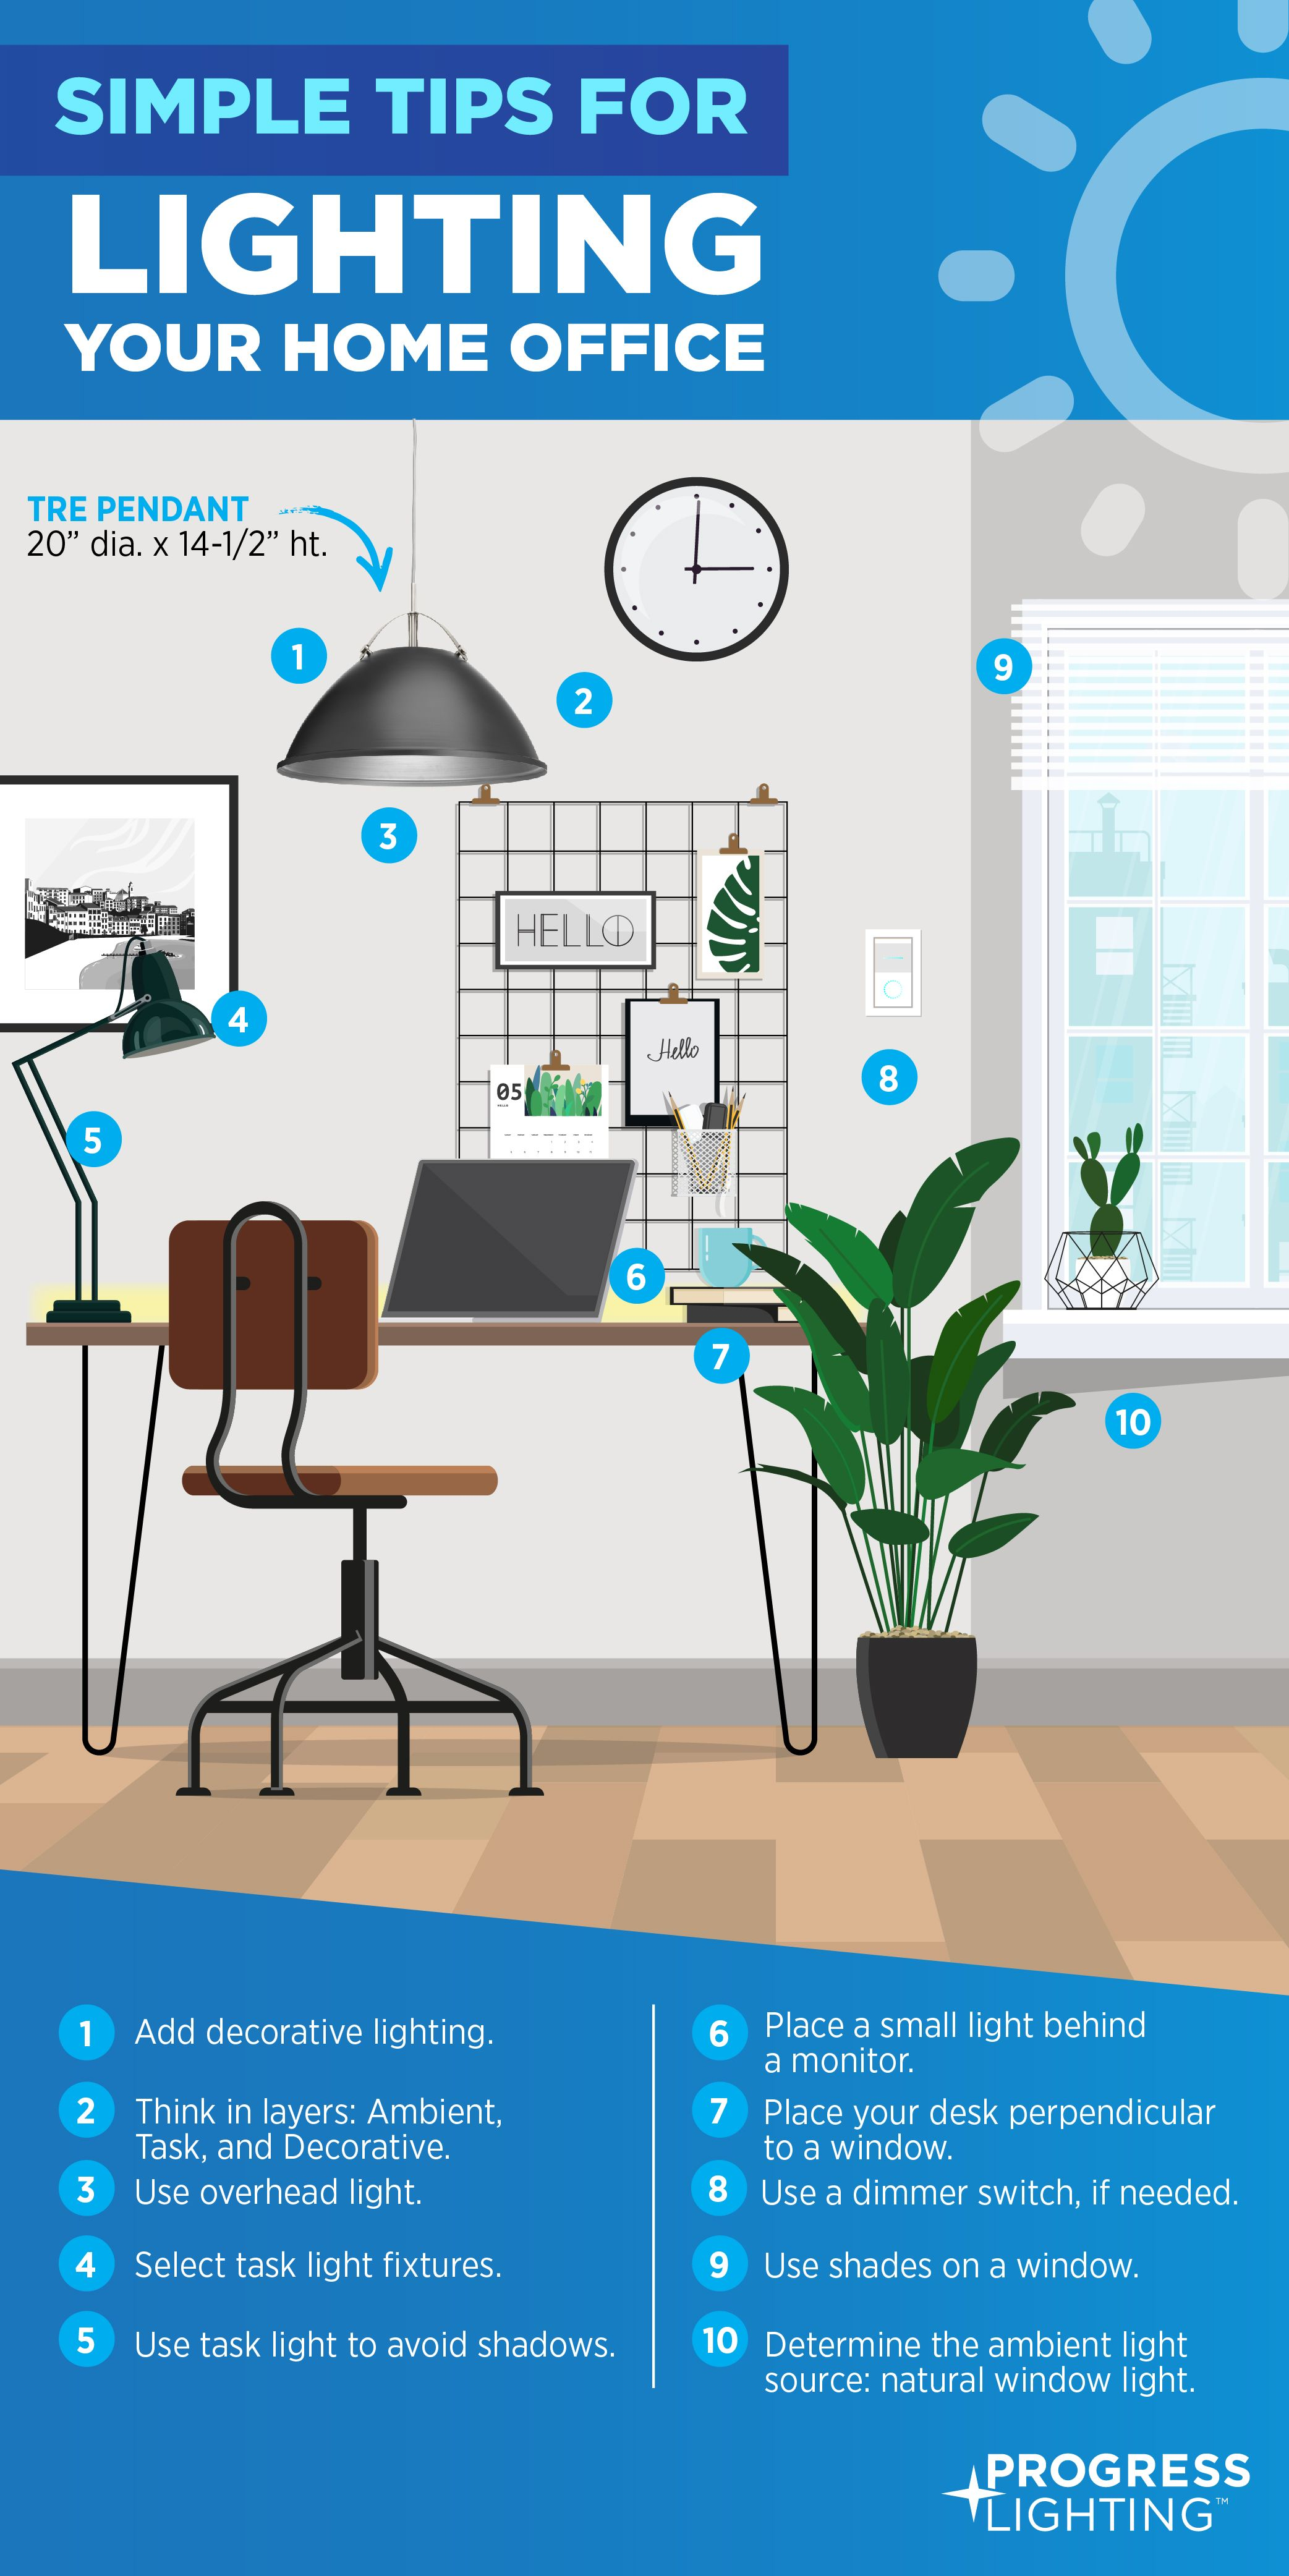 Simple Tips For Lighting Your Home Office To Use While You Work From Home To Make It Easier On You In 2020 Small Desk Lamp Decorating Blogs Led Tape Lighting